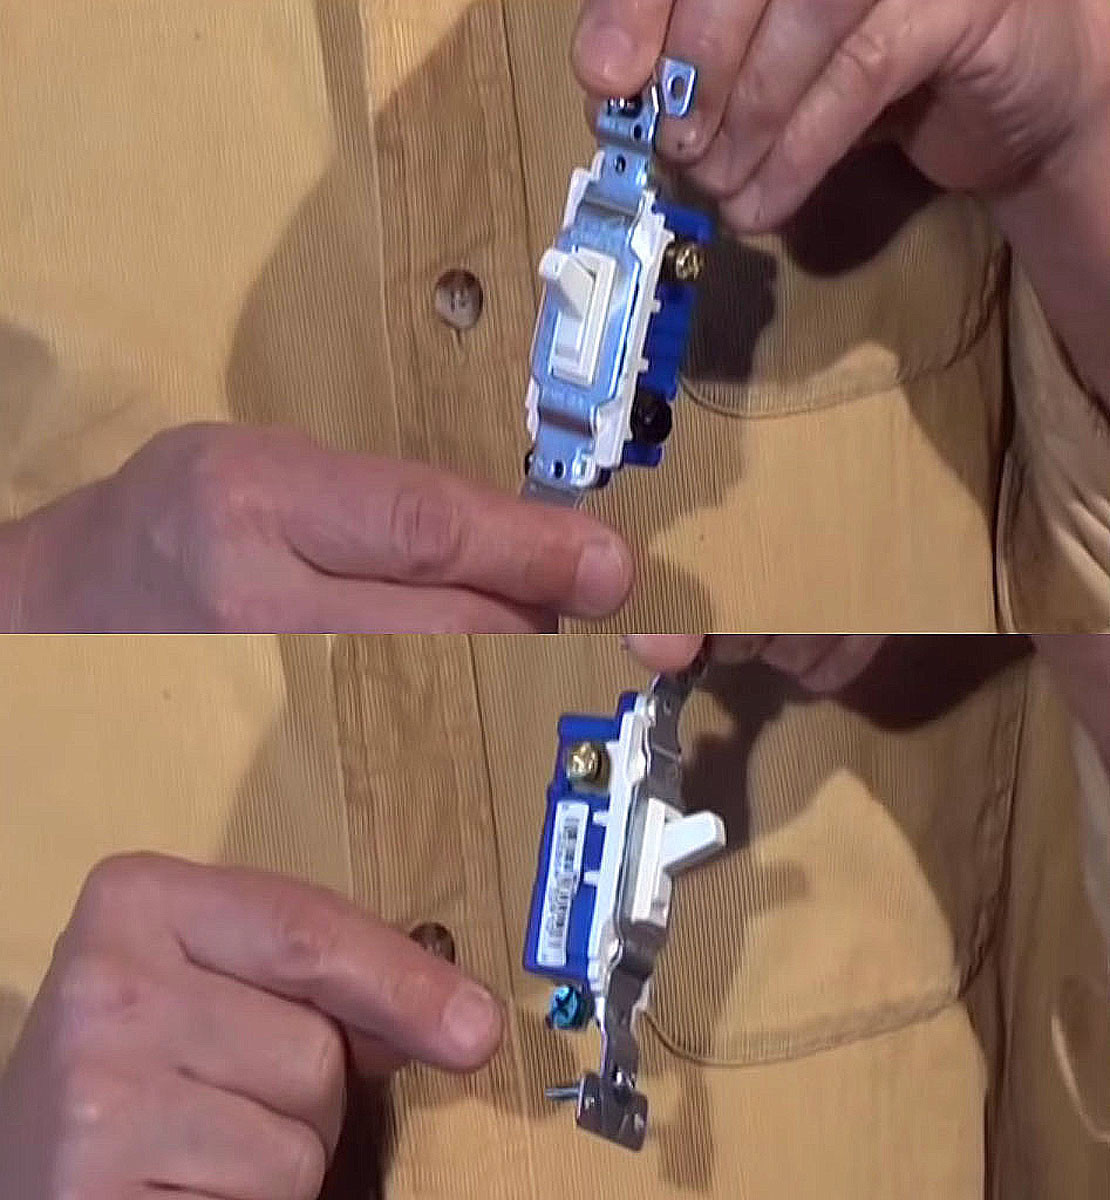 Troubleshooting A 3 Way Switch Is Easy With Multimeter Chicago Wiring Up 2 Dimmer Tribune